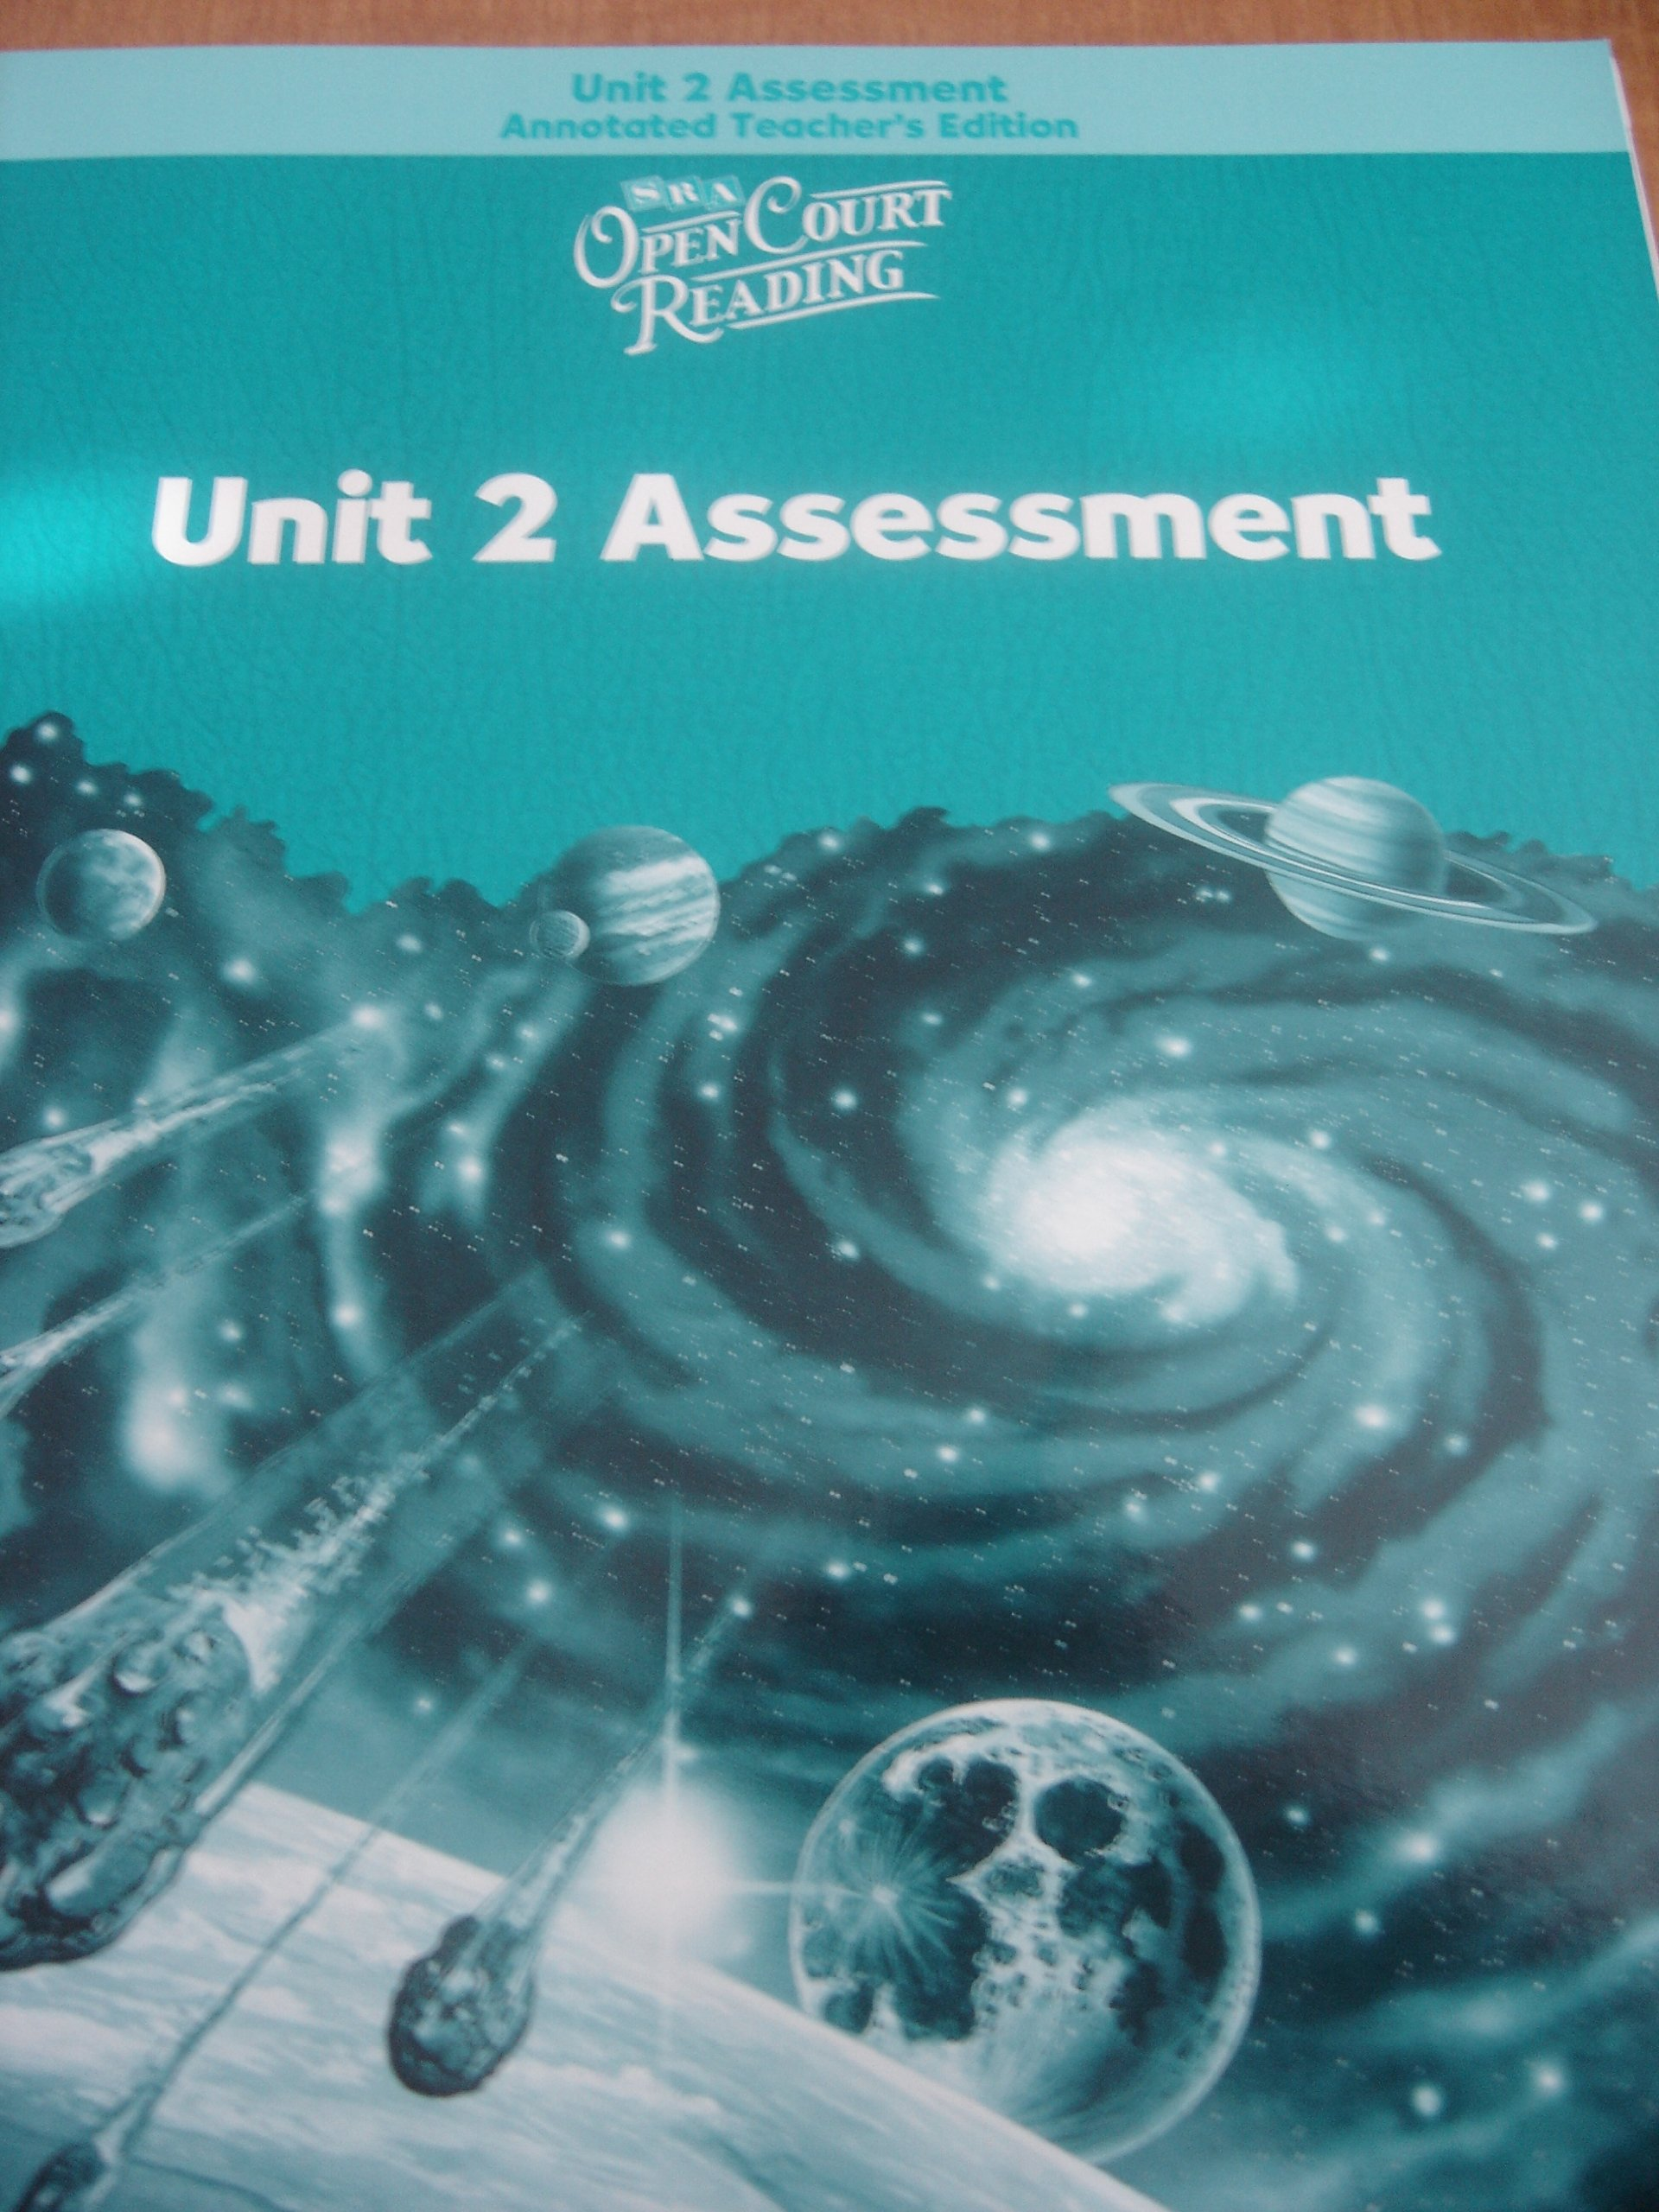 Open Court Reading: Unit 2 Assessment, Annotated Teacher's Edition, Level 5 pdf